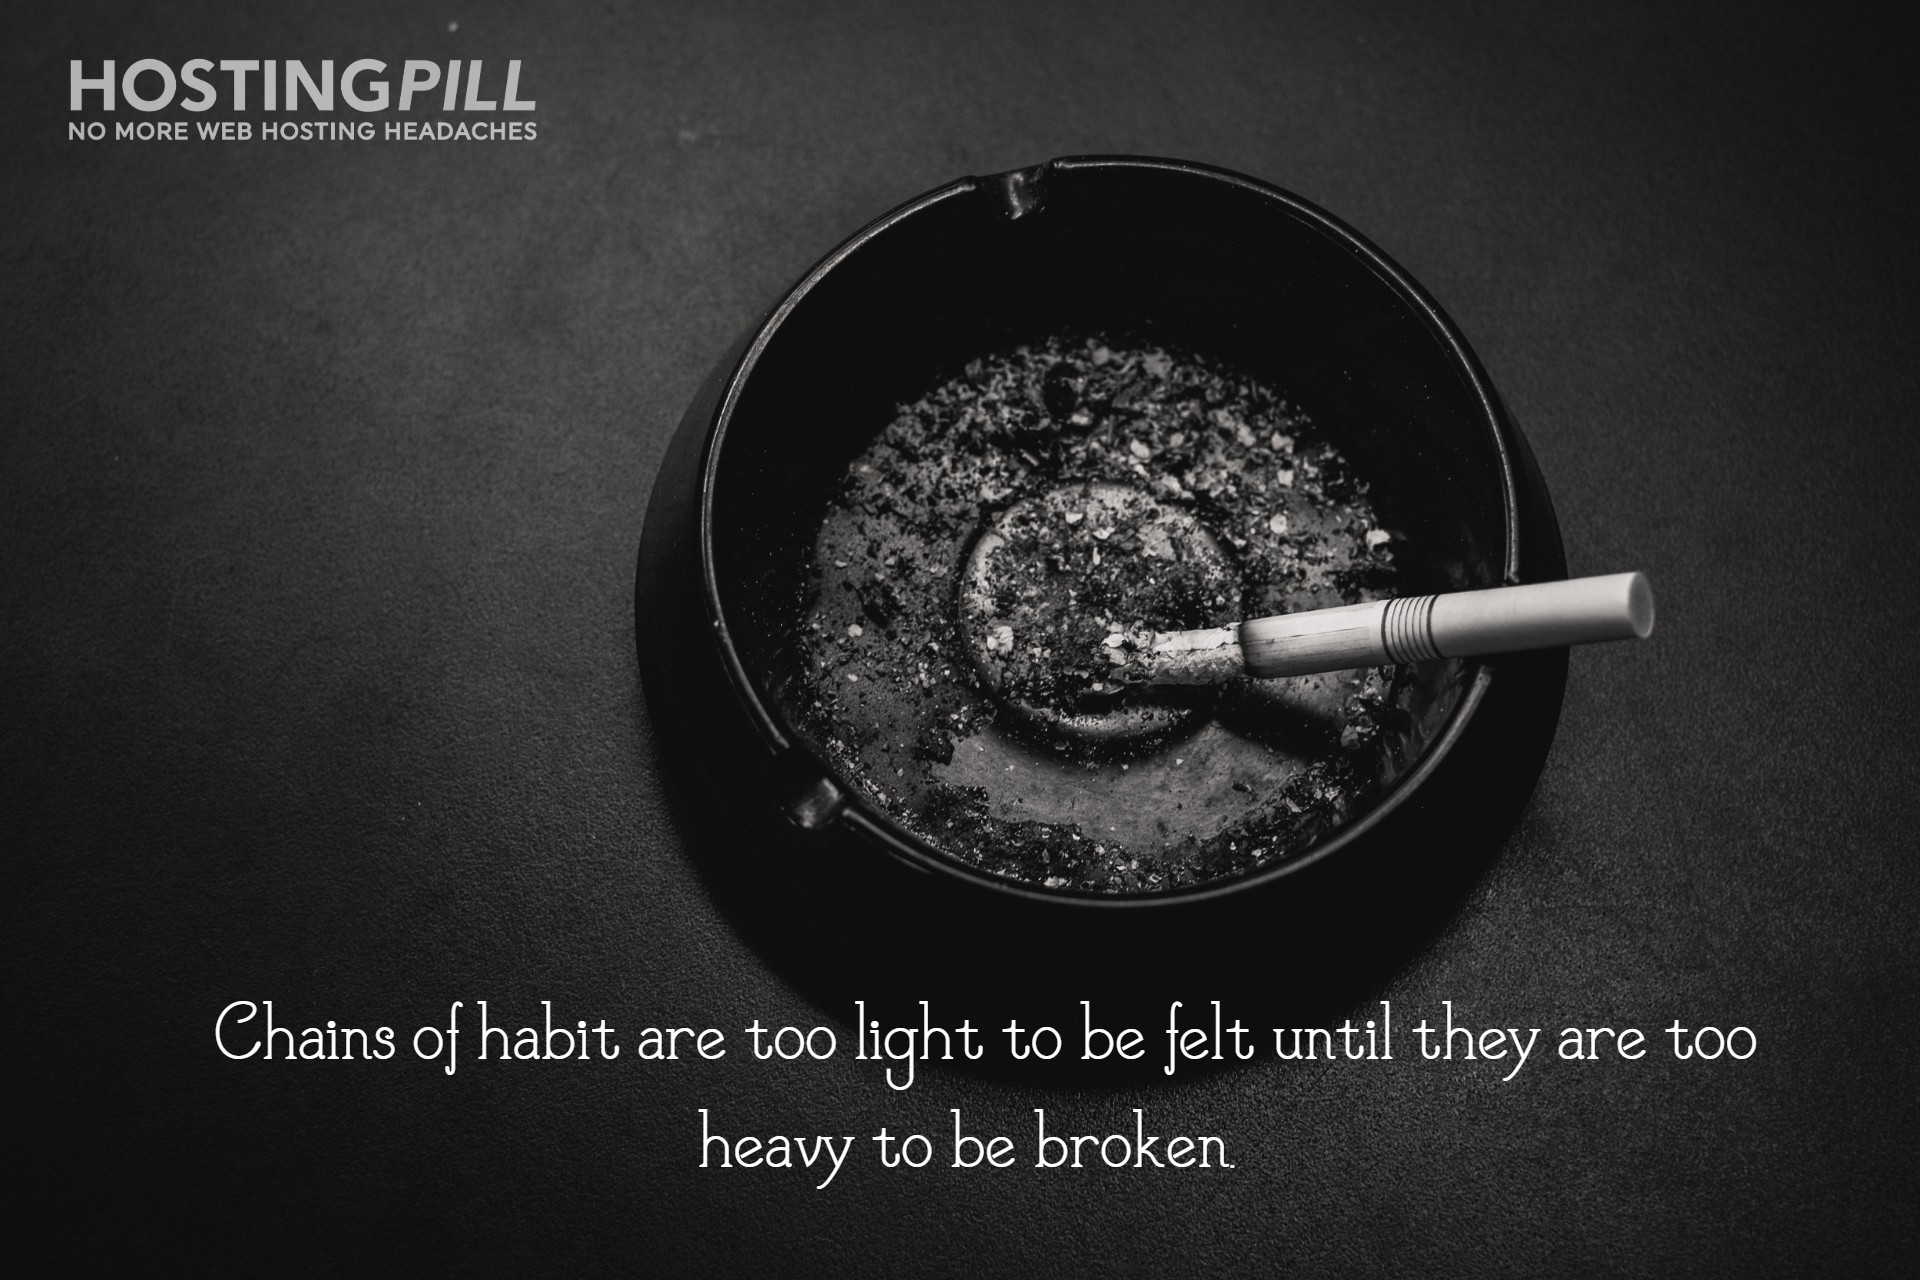 Chains of habit are too light to be felt until they are too heavy to be broken.